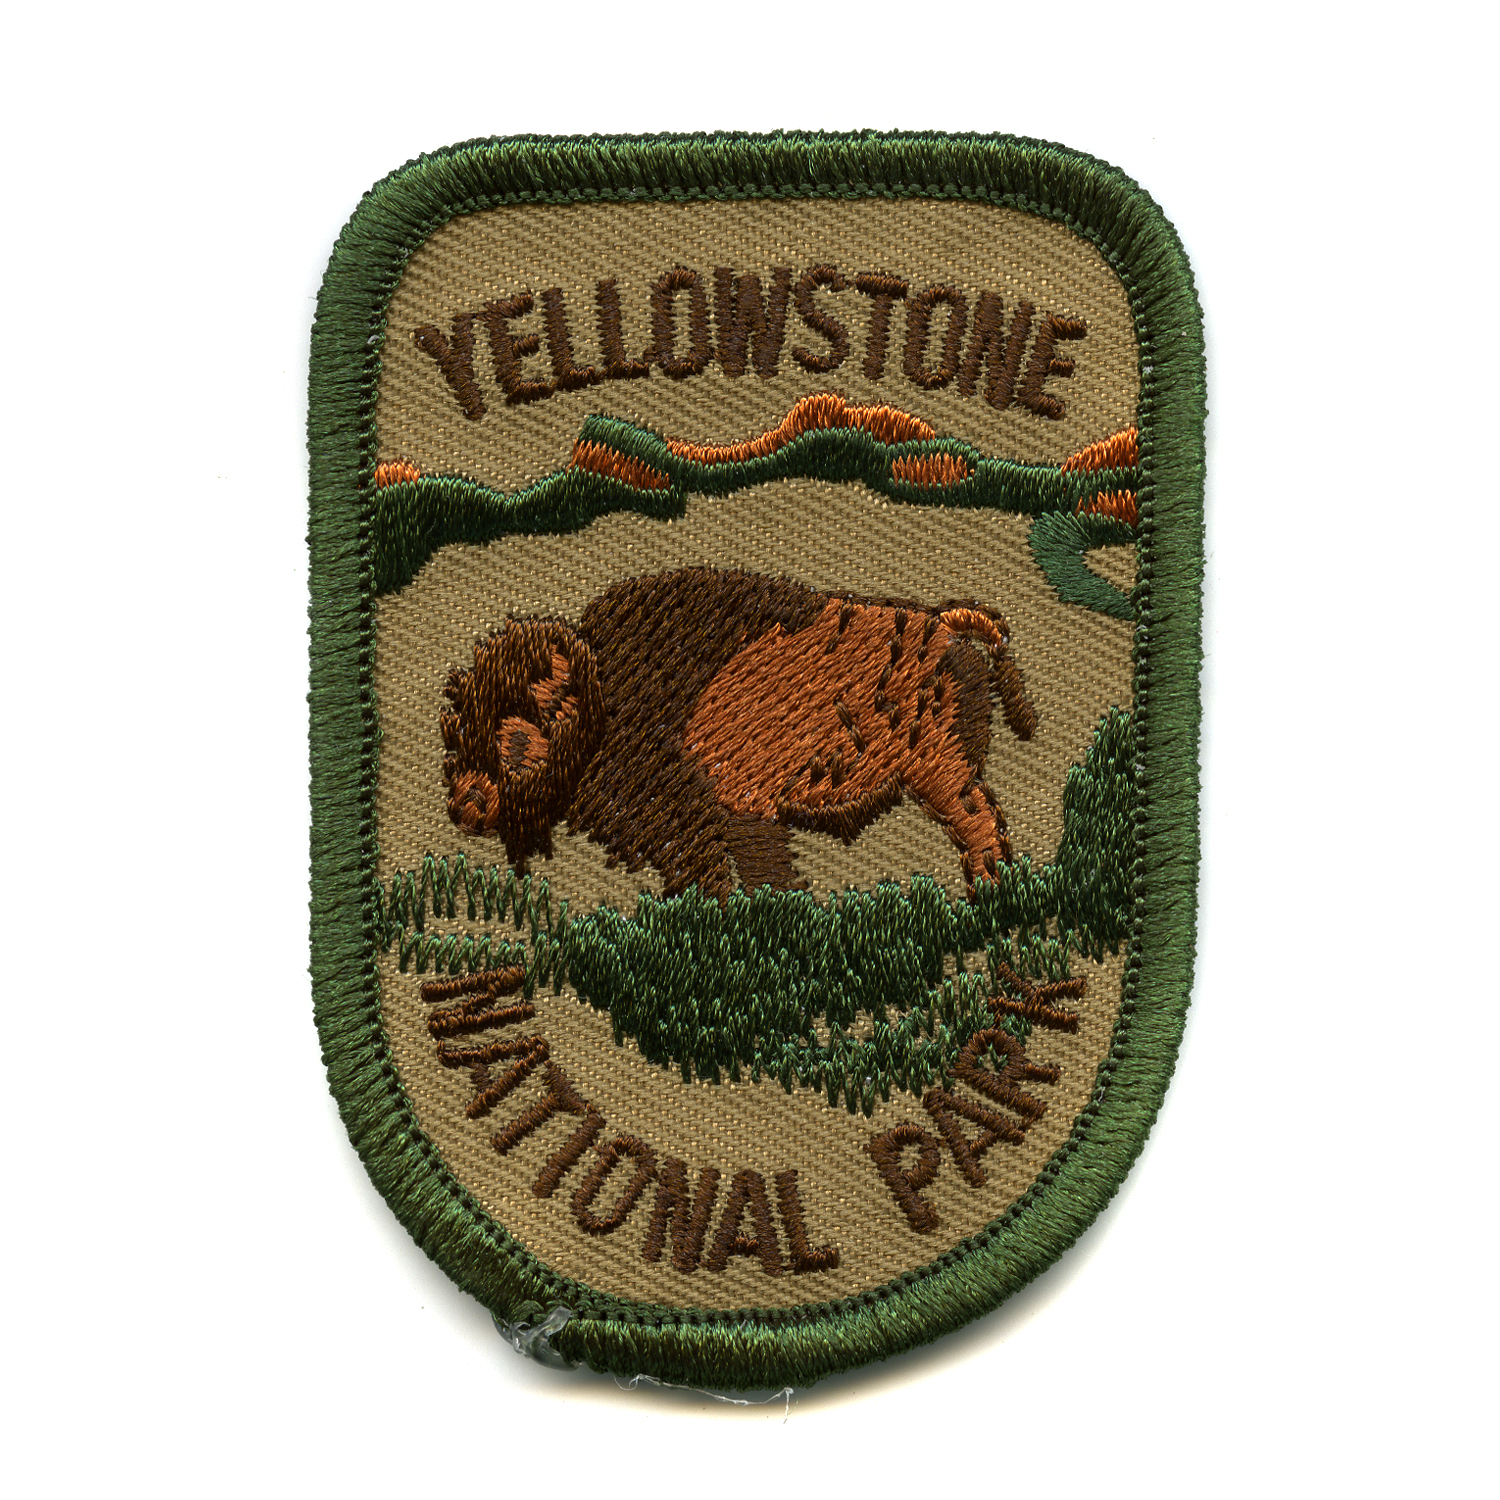 nps_patch_project_yellowstone_national_park_4.jpg